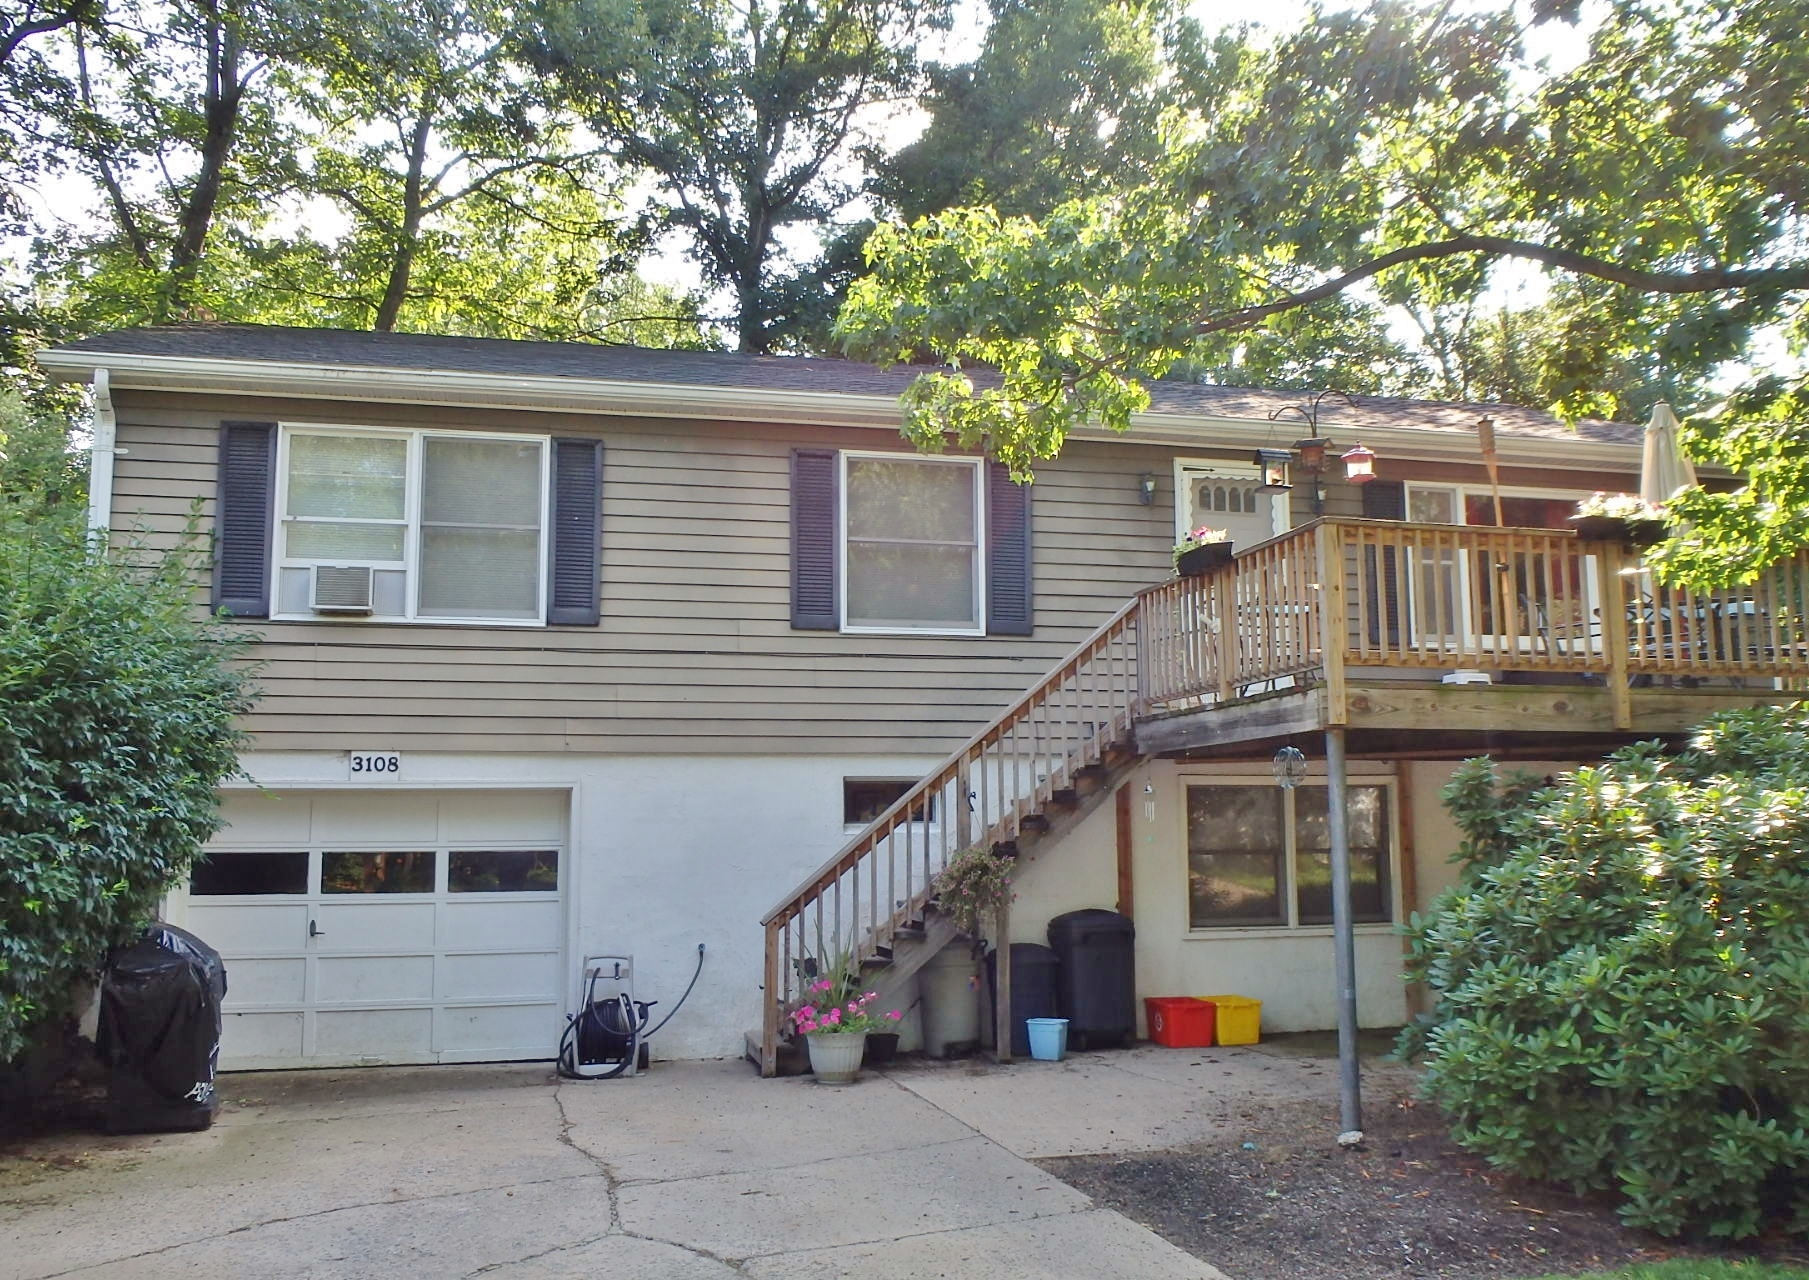 3-bedroom house for rent at 3108 Carnegie Drive in State College, PA.